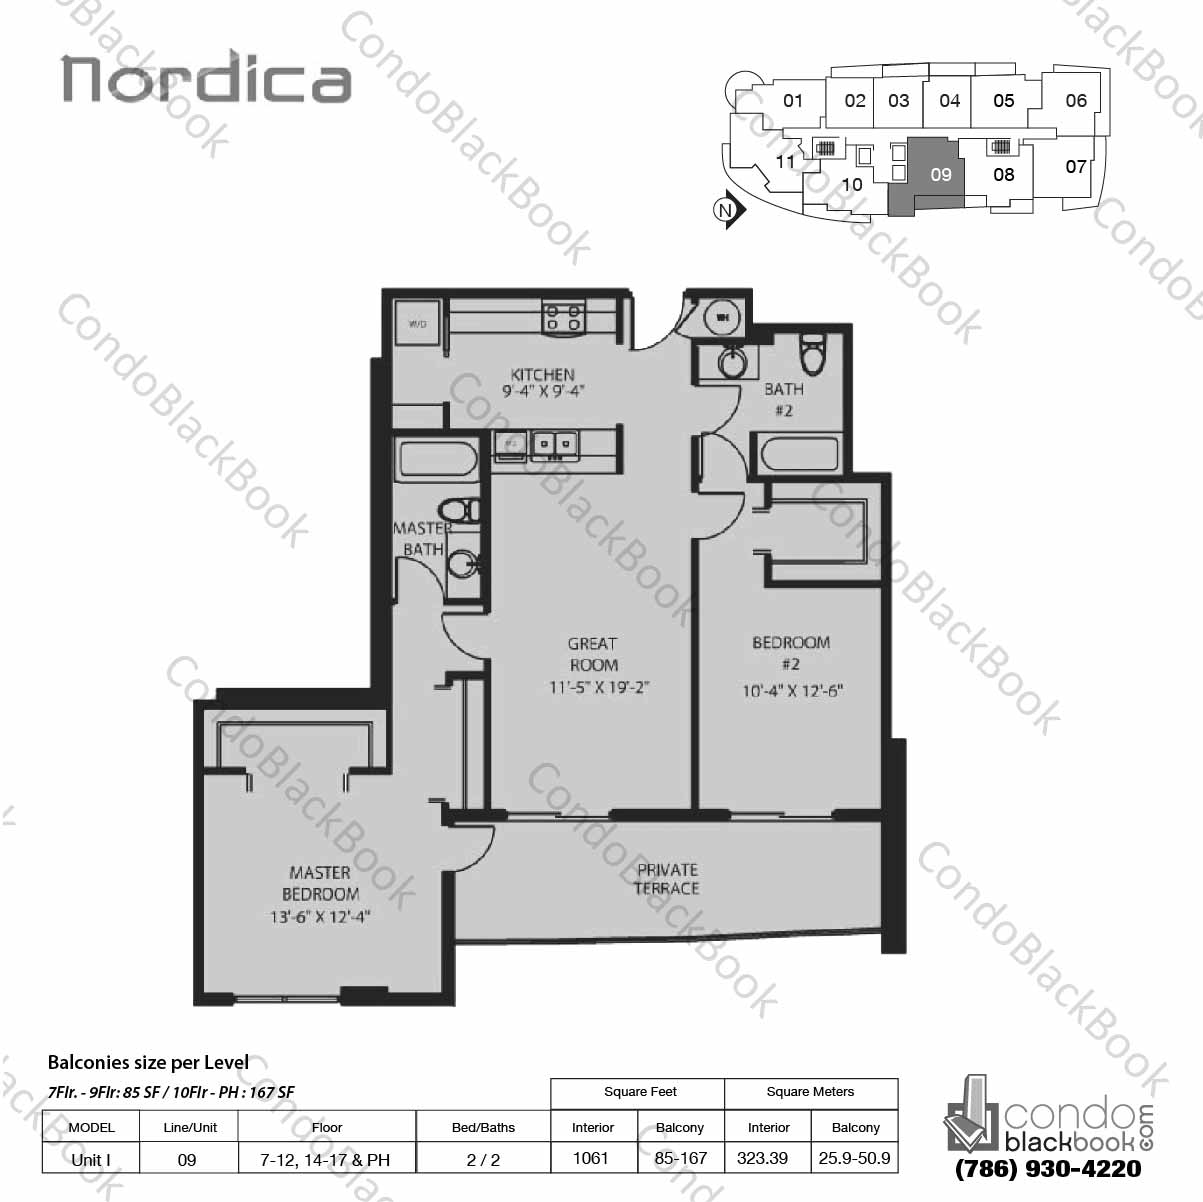 Floor plan for Nordica Coral Way, model Unit I, line 09,  2 / 2 bedrooms, 1061 sq ft